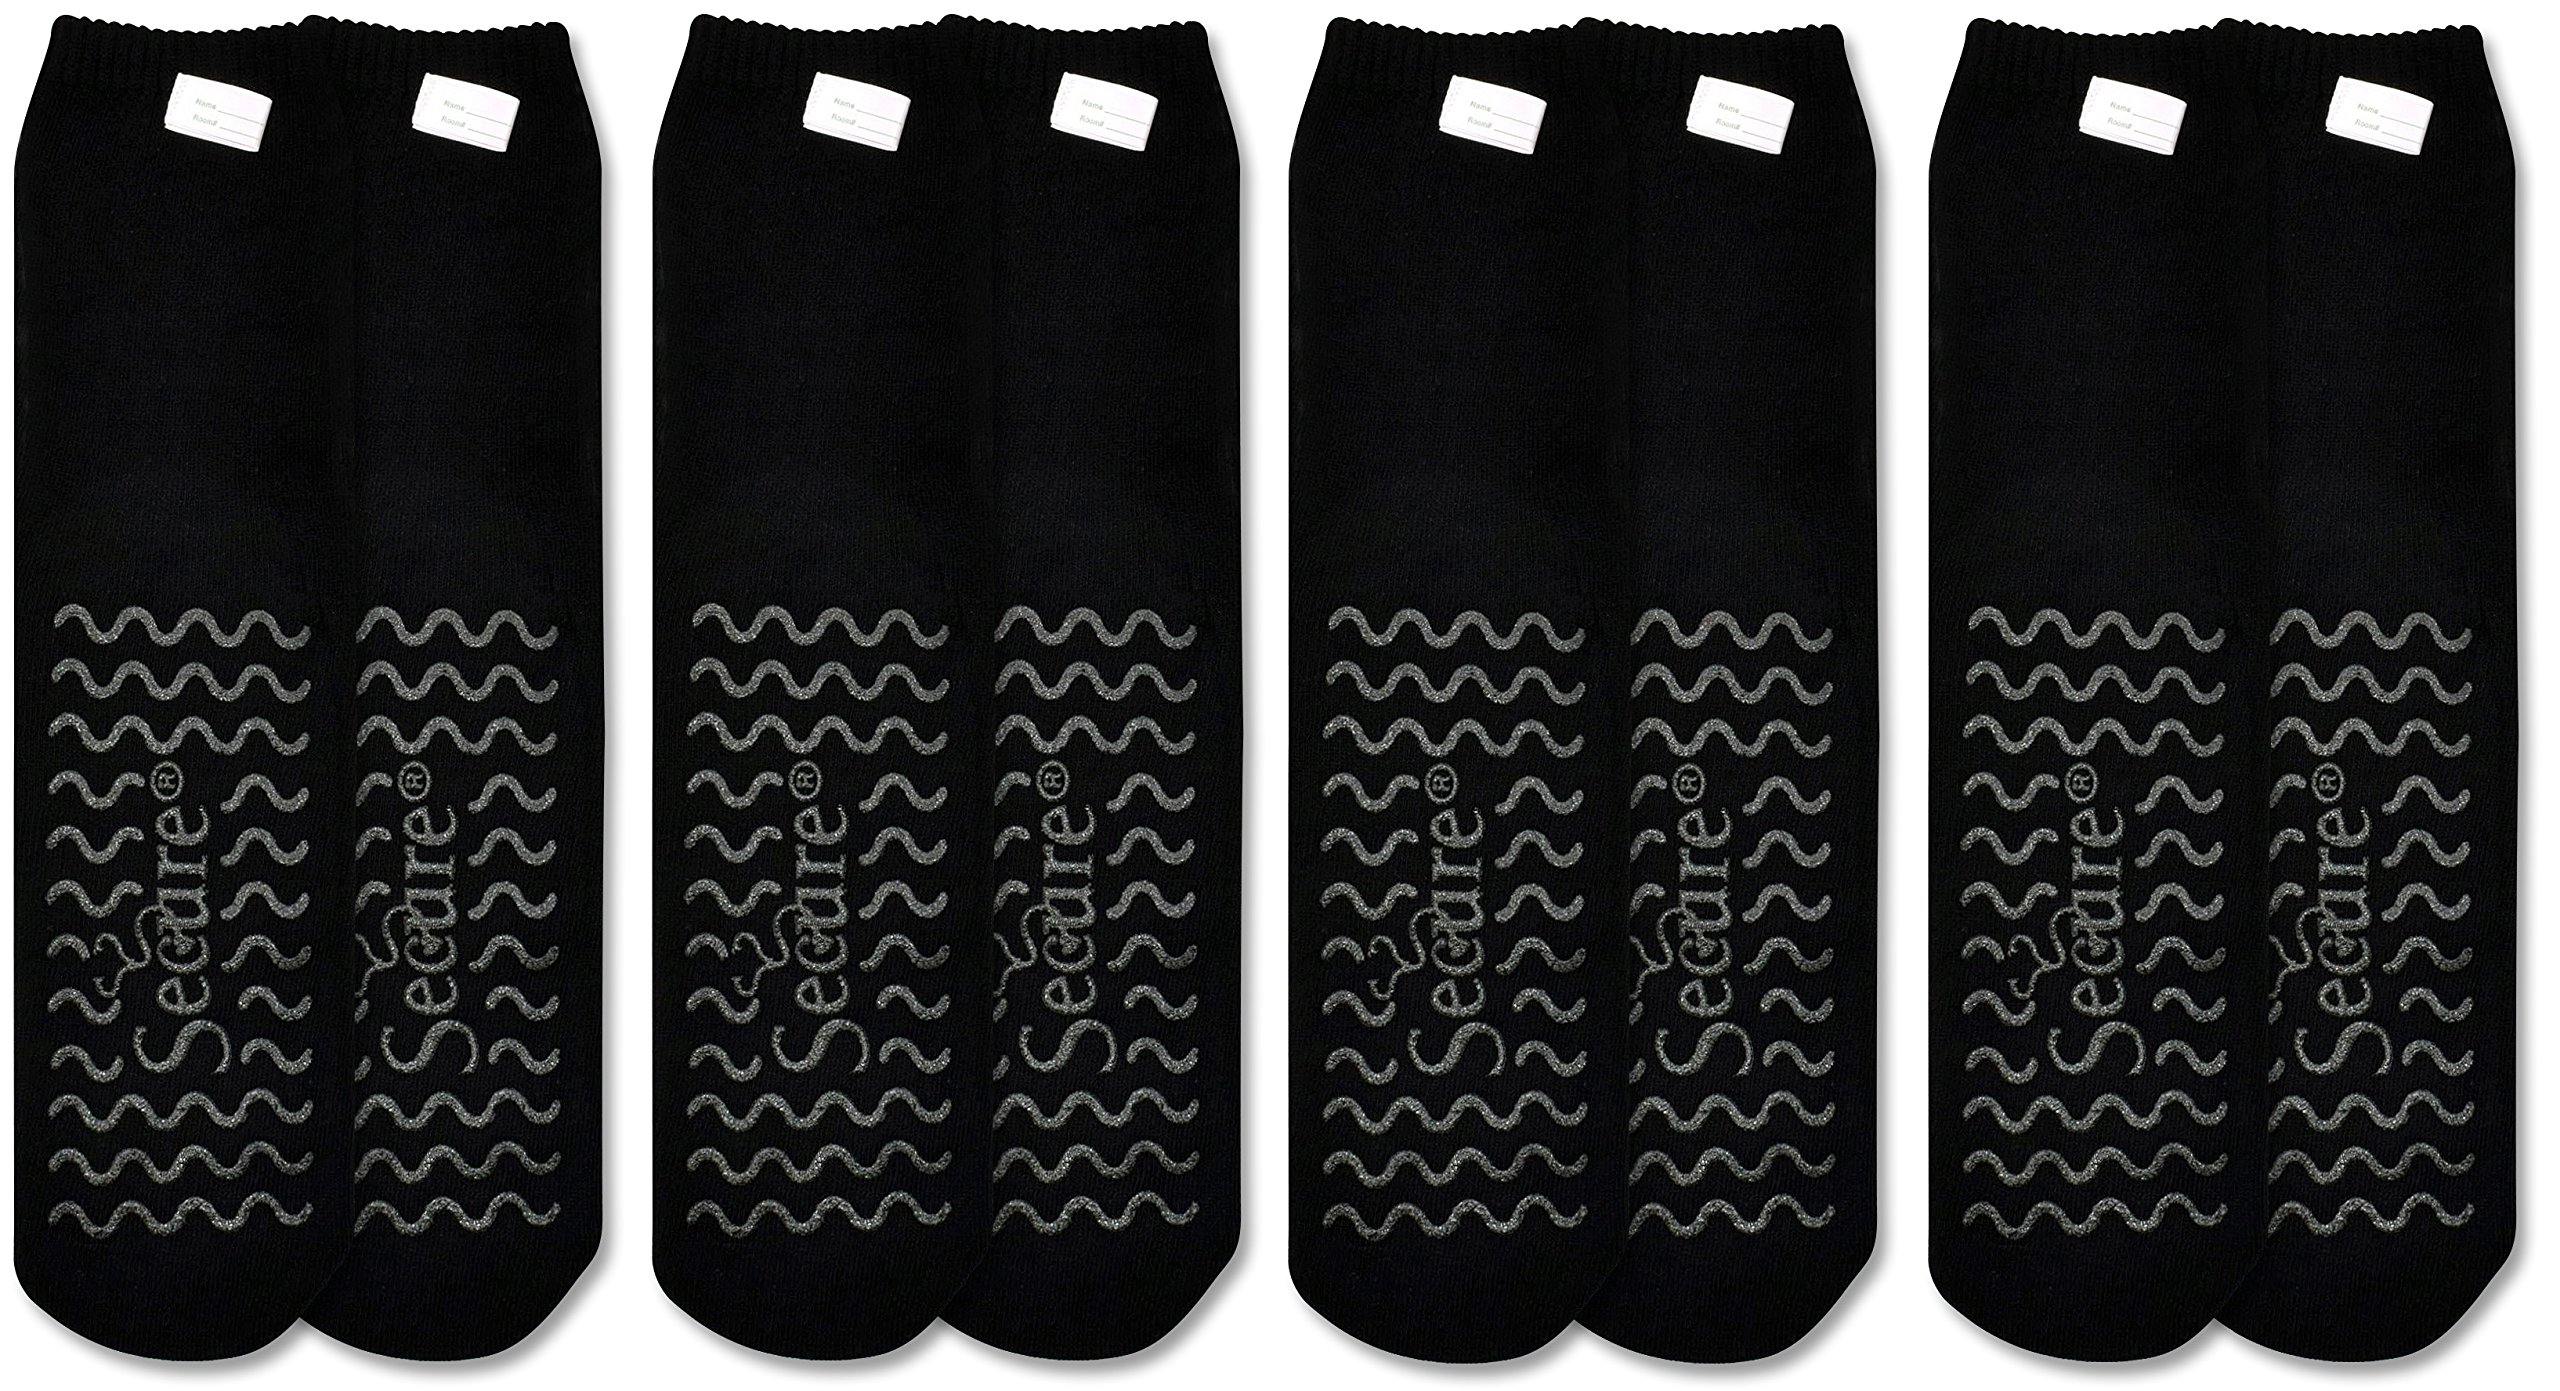 Secure (4 Pairs) Ultra Soft Non Slip Grip Slipper Socks, Black - Fall Injury Prevention Hospital Tread Sock for Safety, Comfort and Warmth